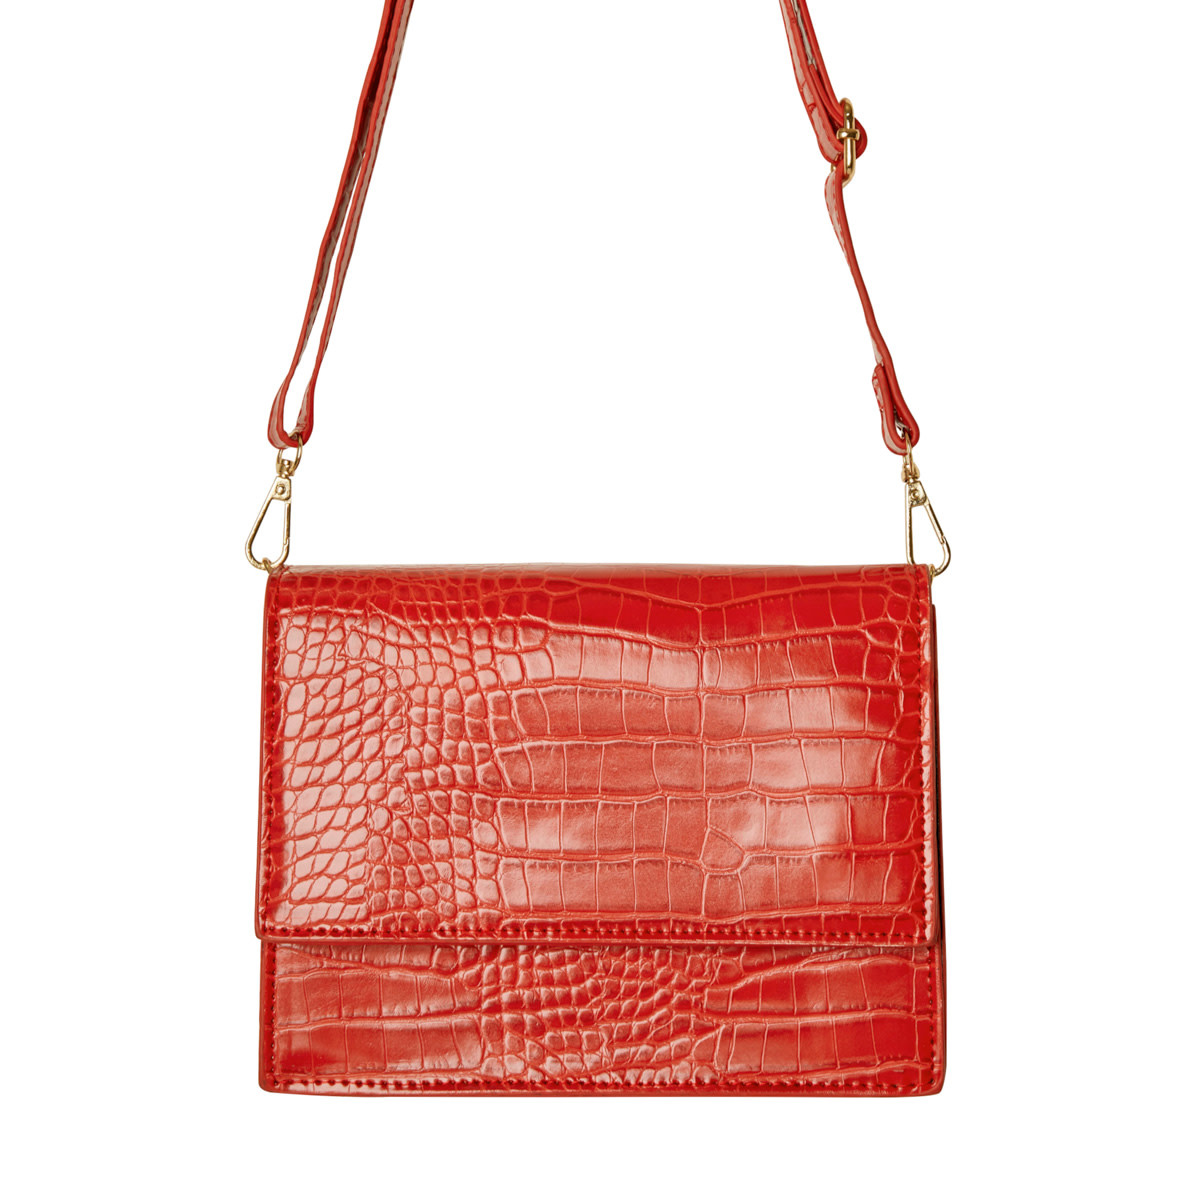 With love Bag Uptown girl - red 21cm x 13.50cm x 7cm